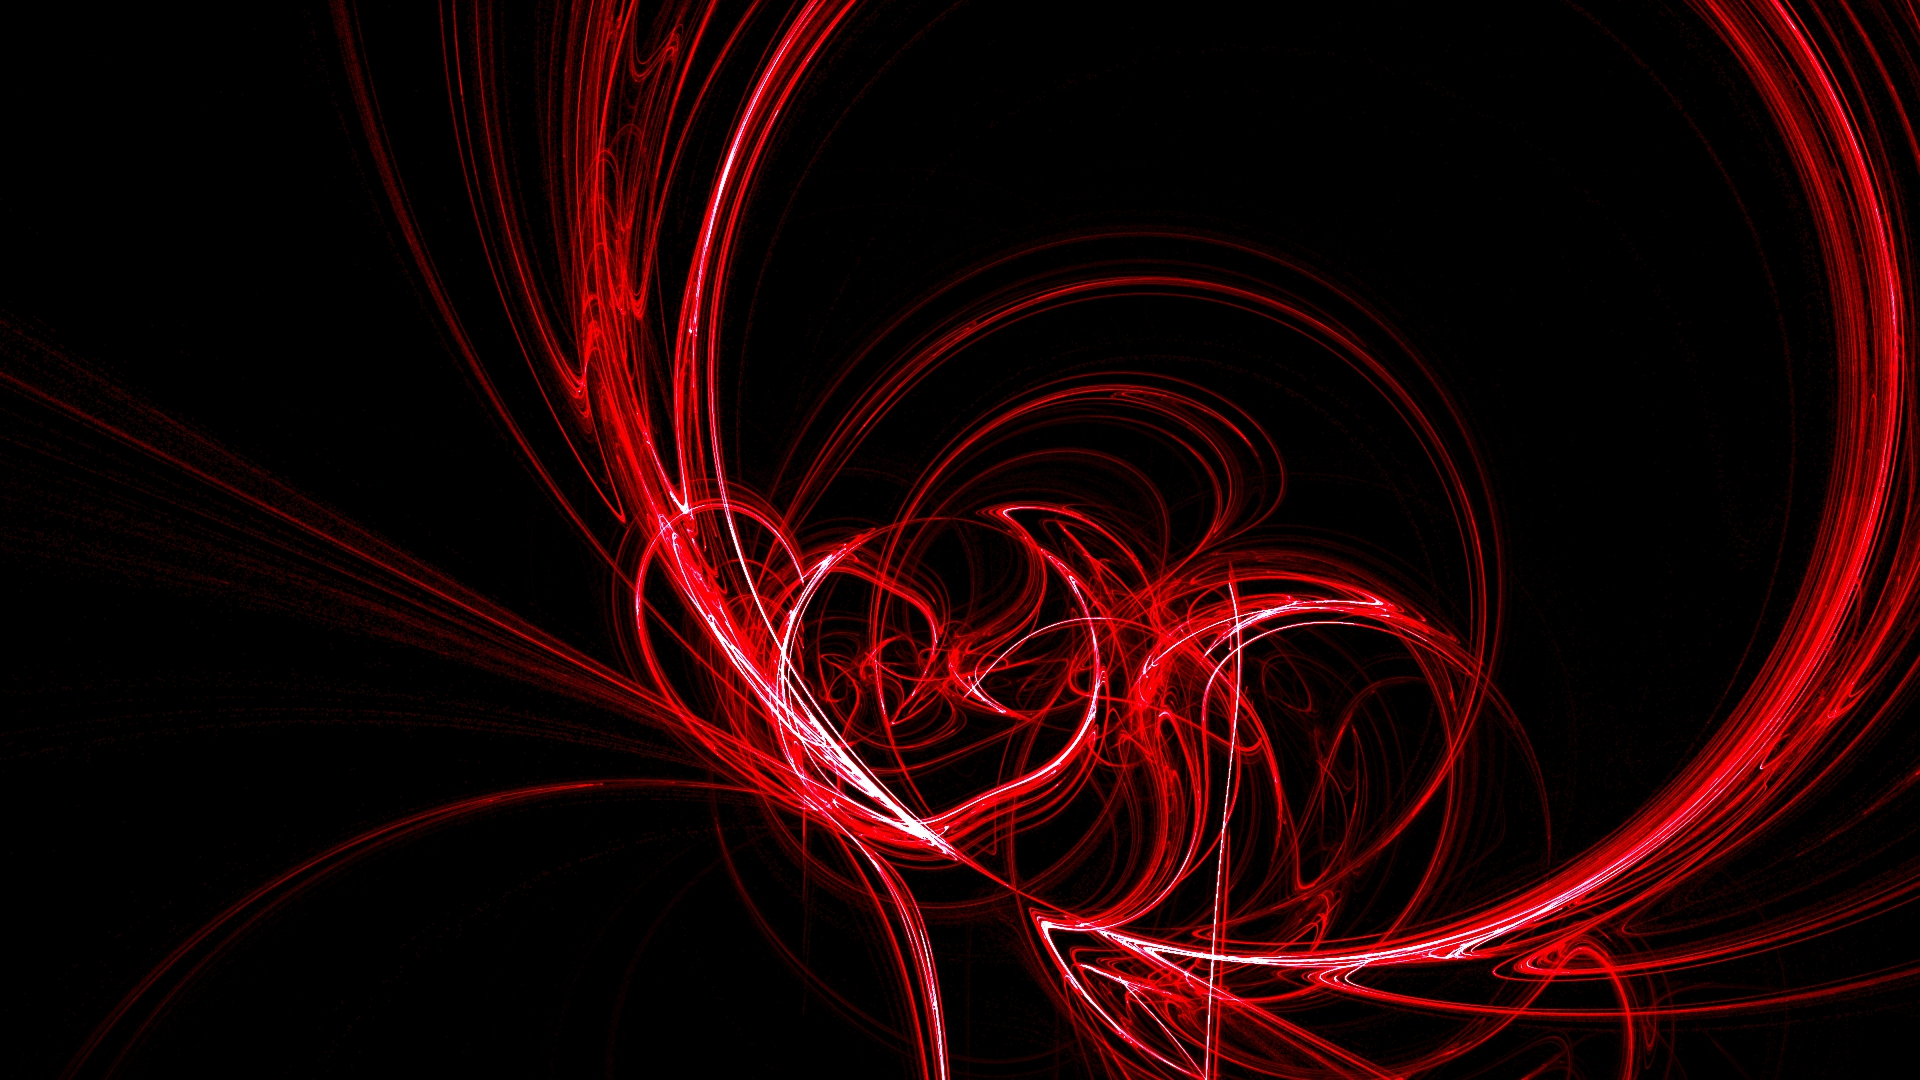 awesome red and black abstract hd wallpaper background